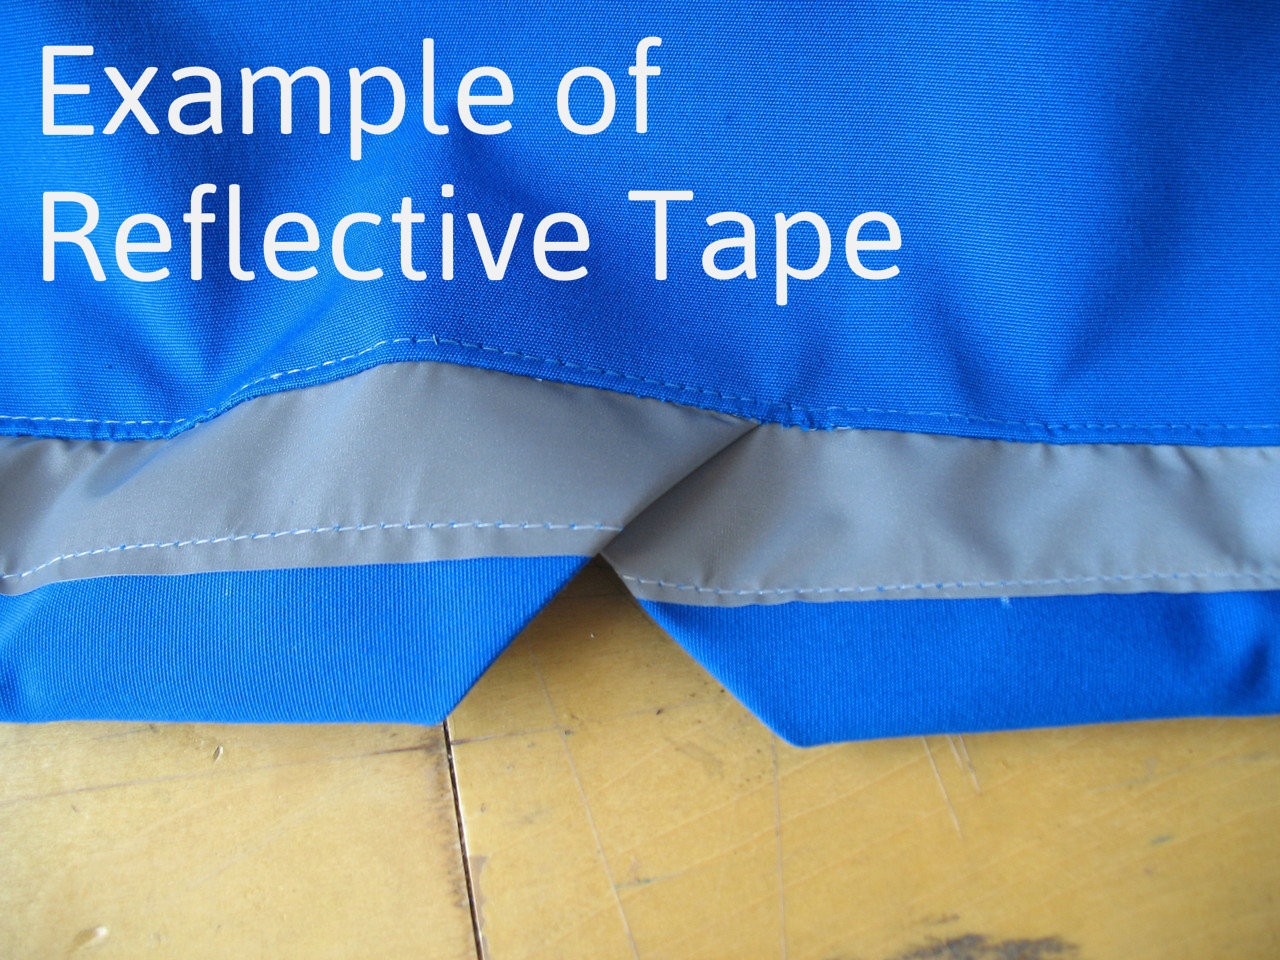 Optional Upgrade: Reflective Tape - increase visibility while parked on the street or boat yard.